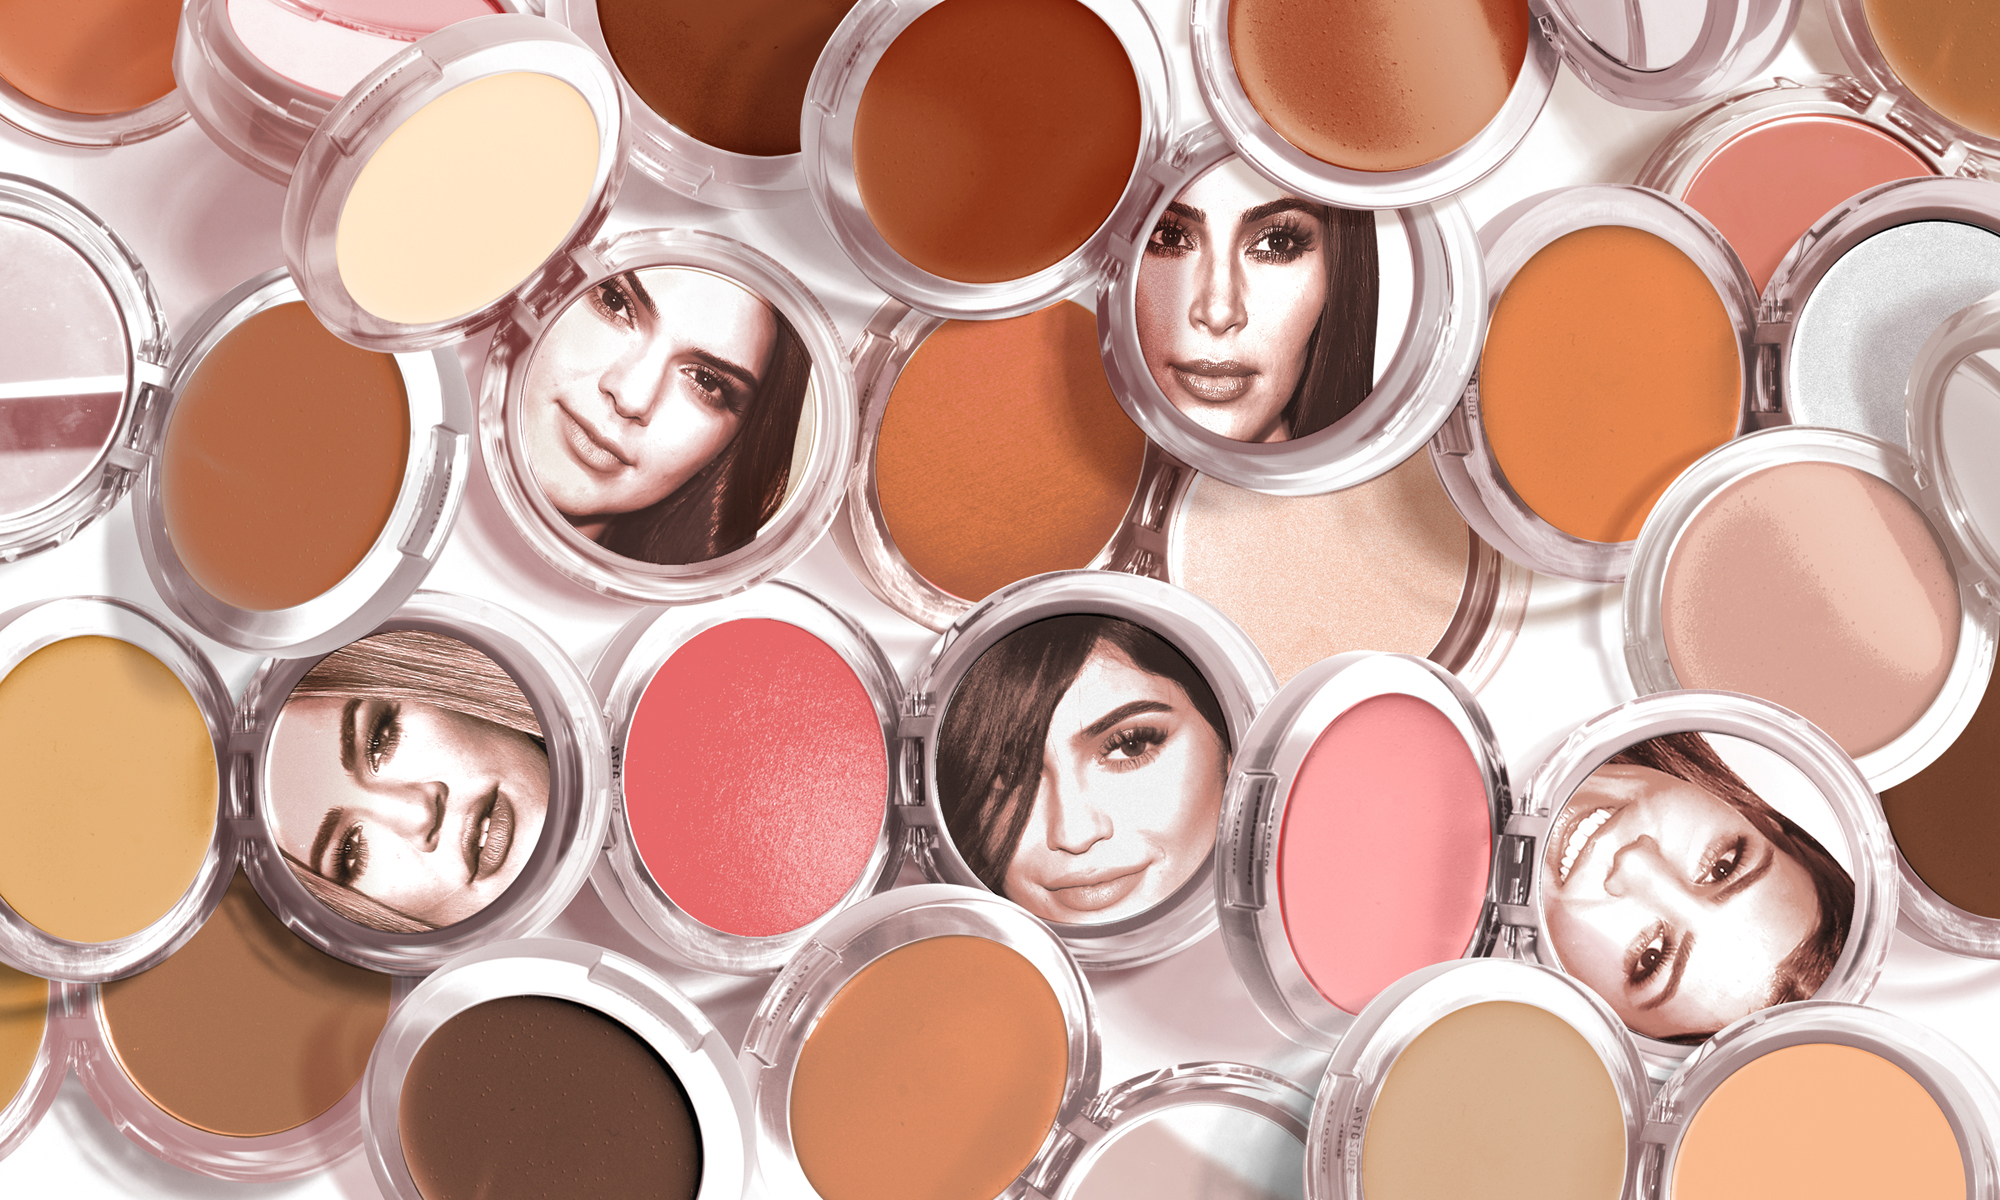 The Kardashian-Jenner sisters' faces are reflected in makeup compact mirrors